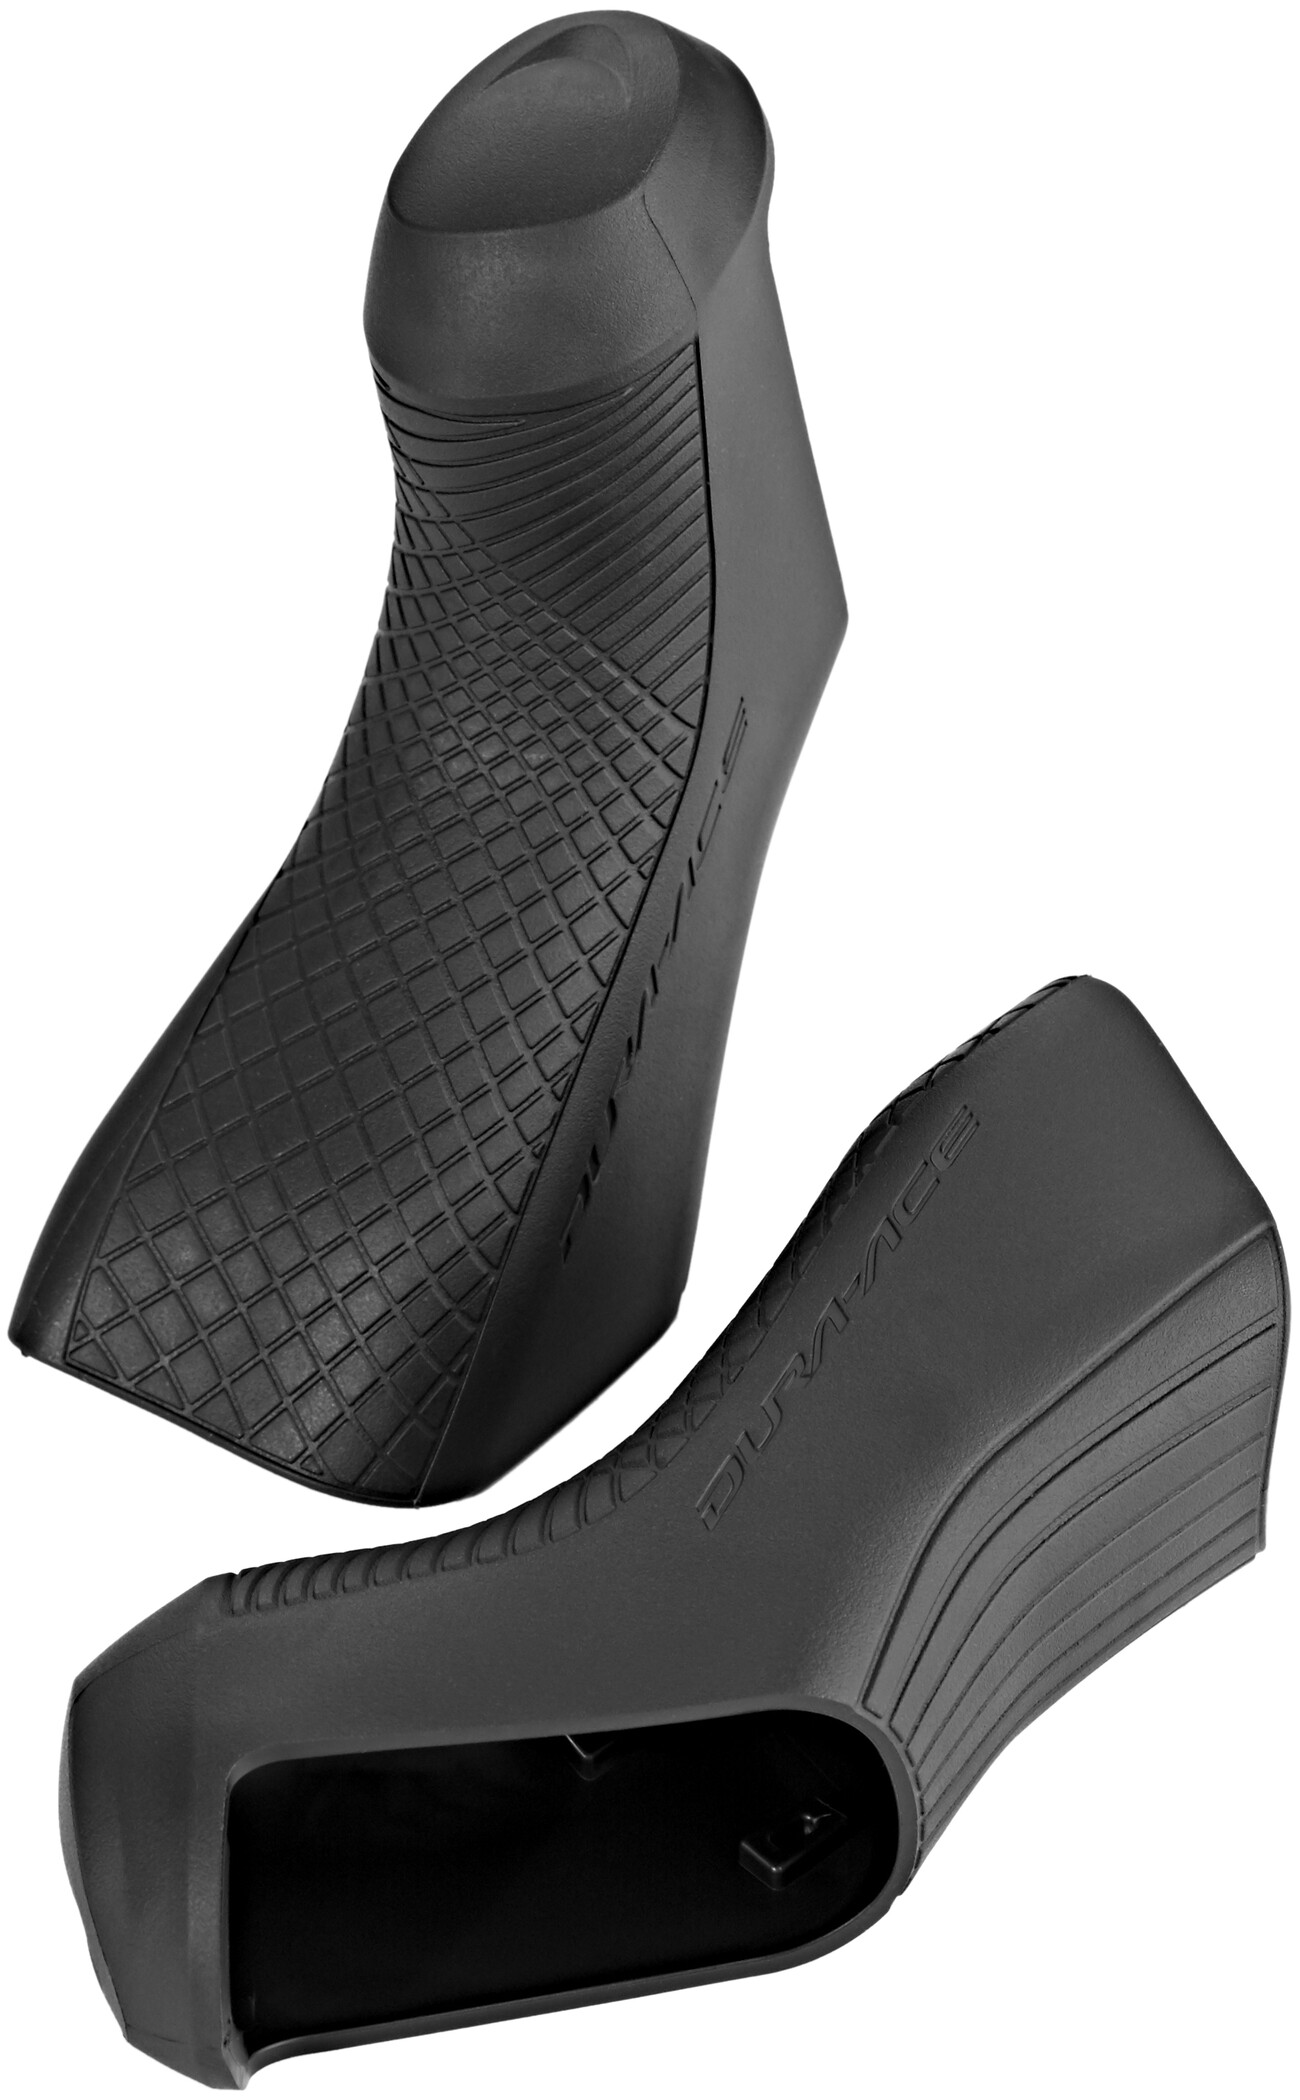 Motorcycle rubber gear shift shifter sock cover boot protector street dirt TK SS